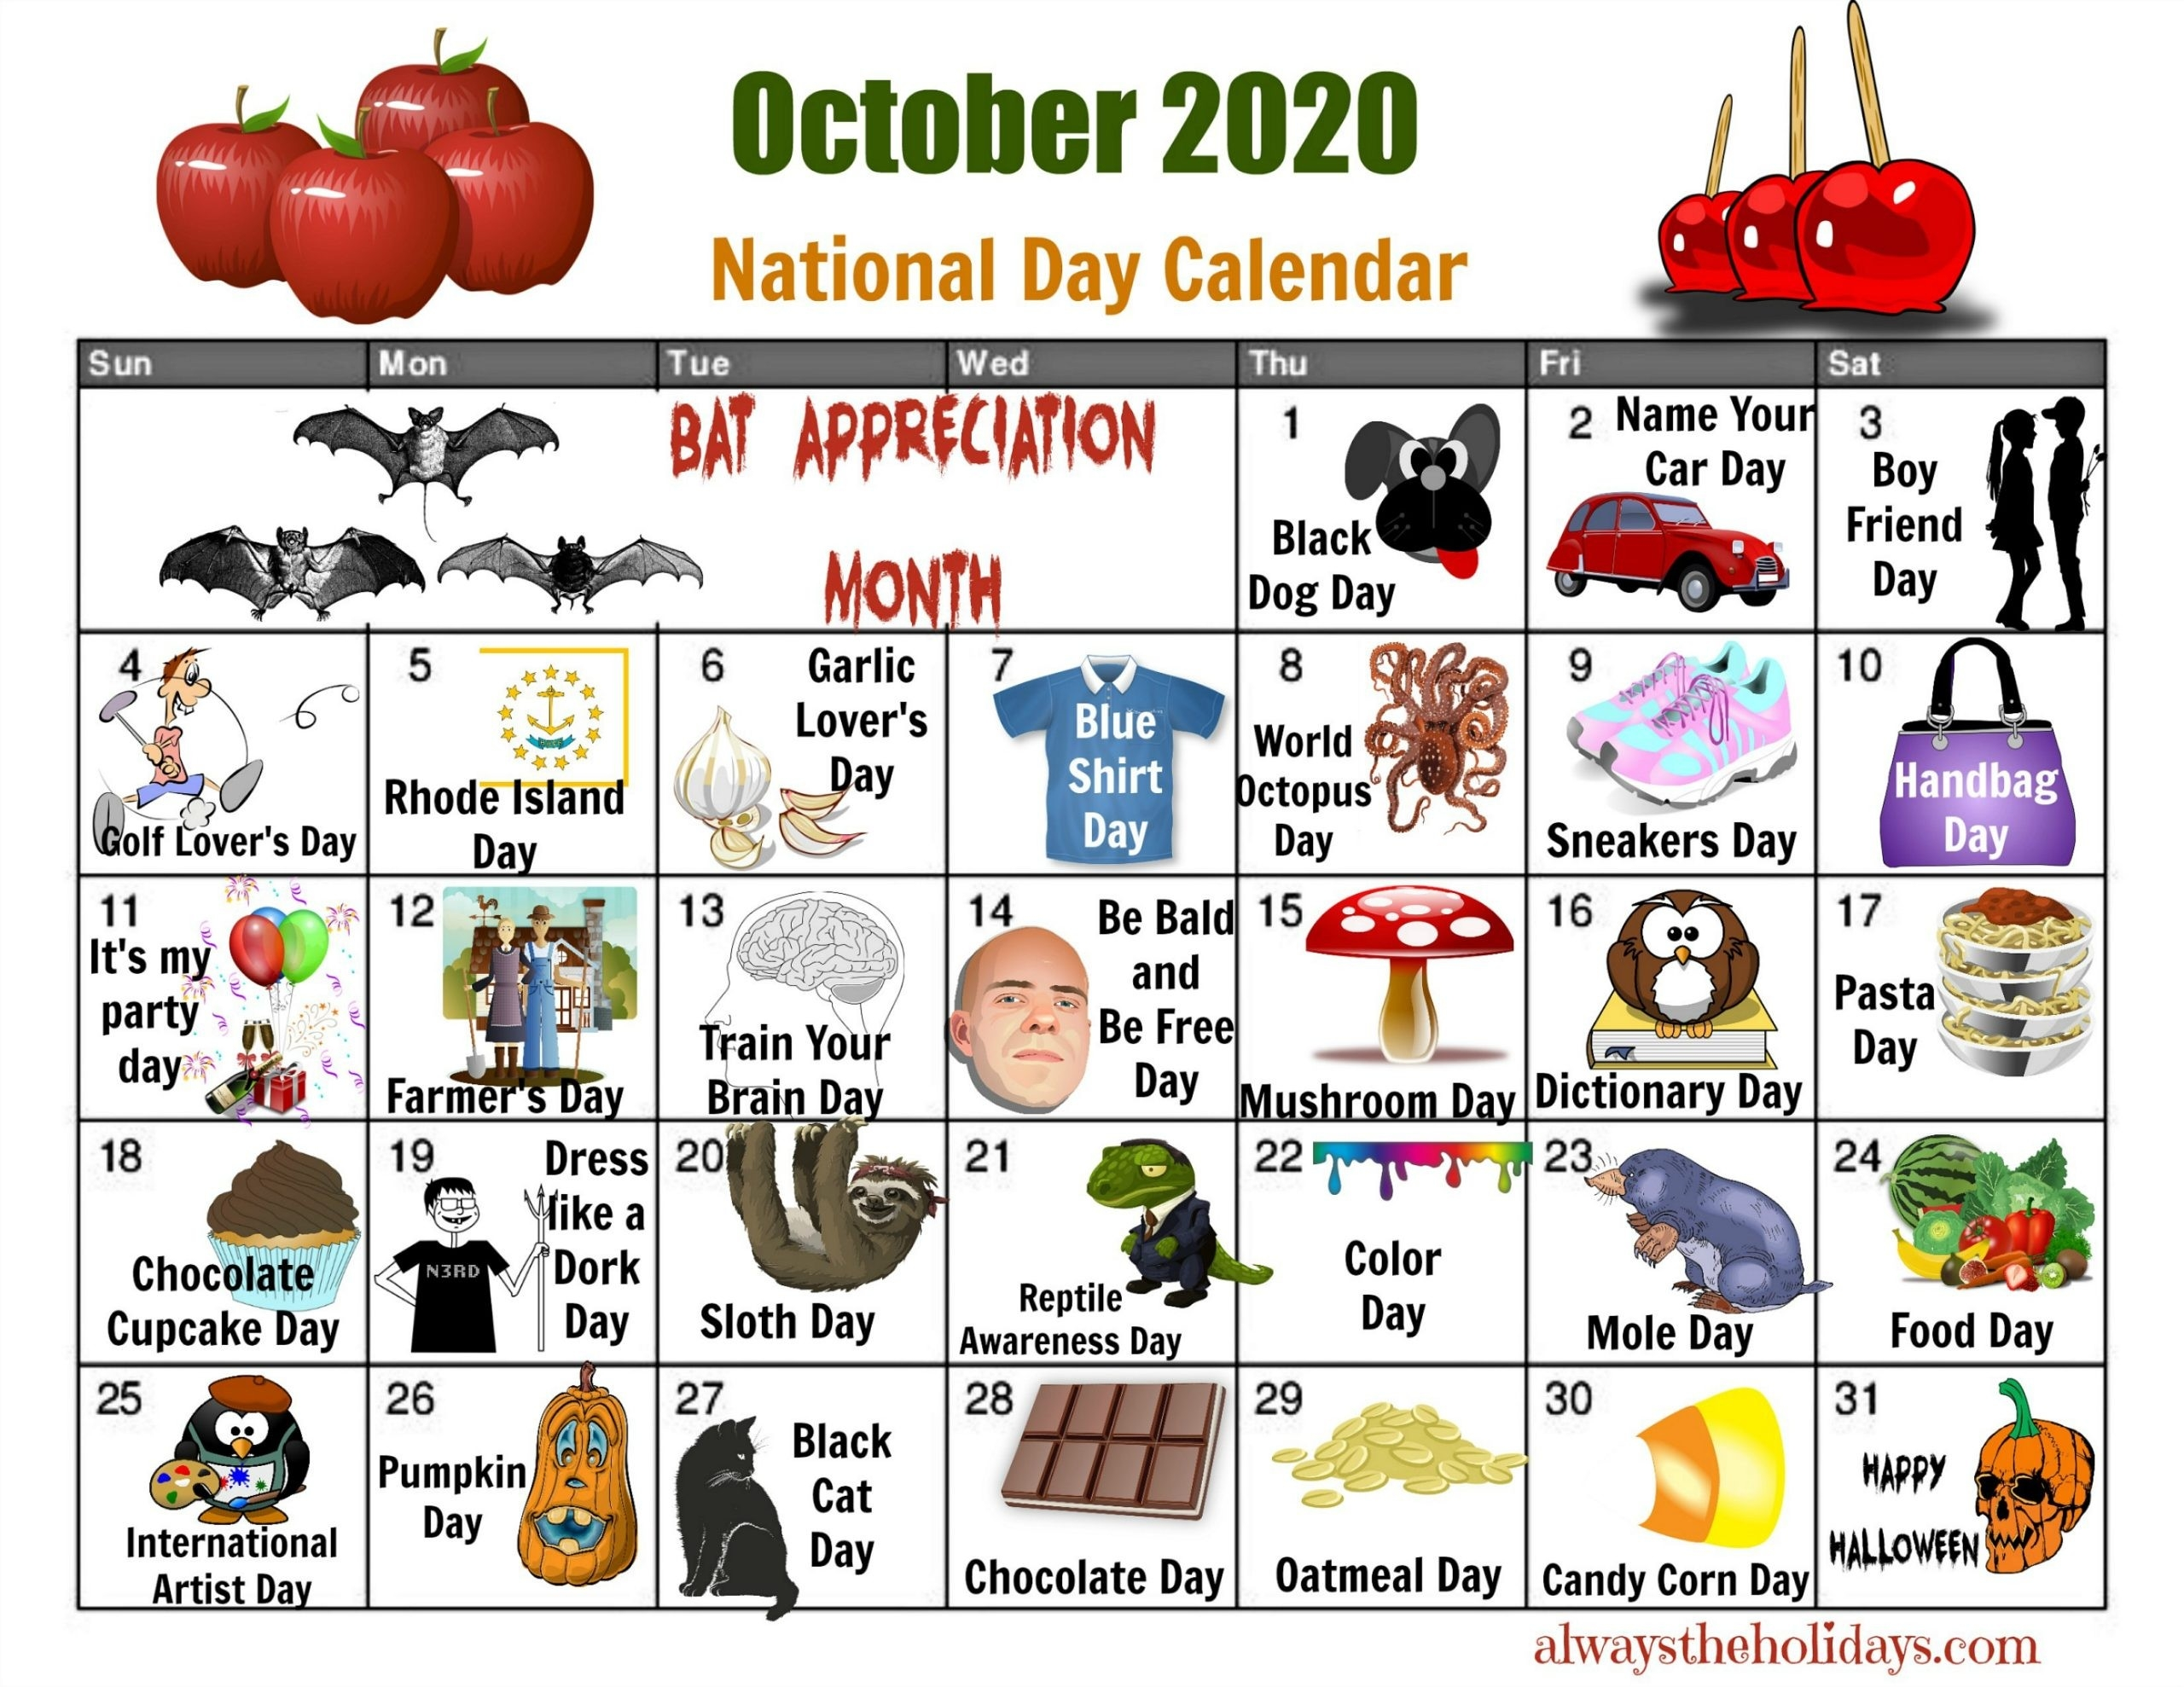 October National Day Calendar - Free Printable Calendars  Printable Calendar Of National Days 2021